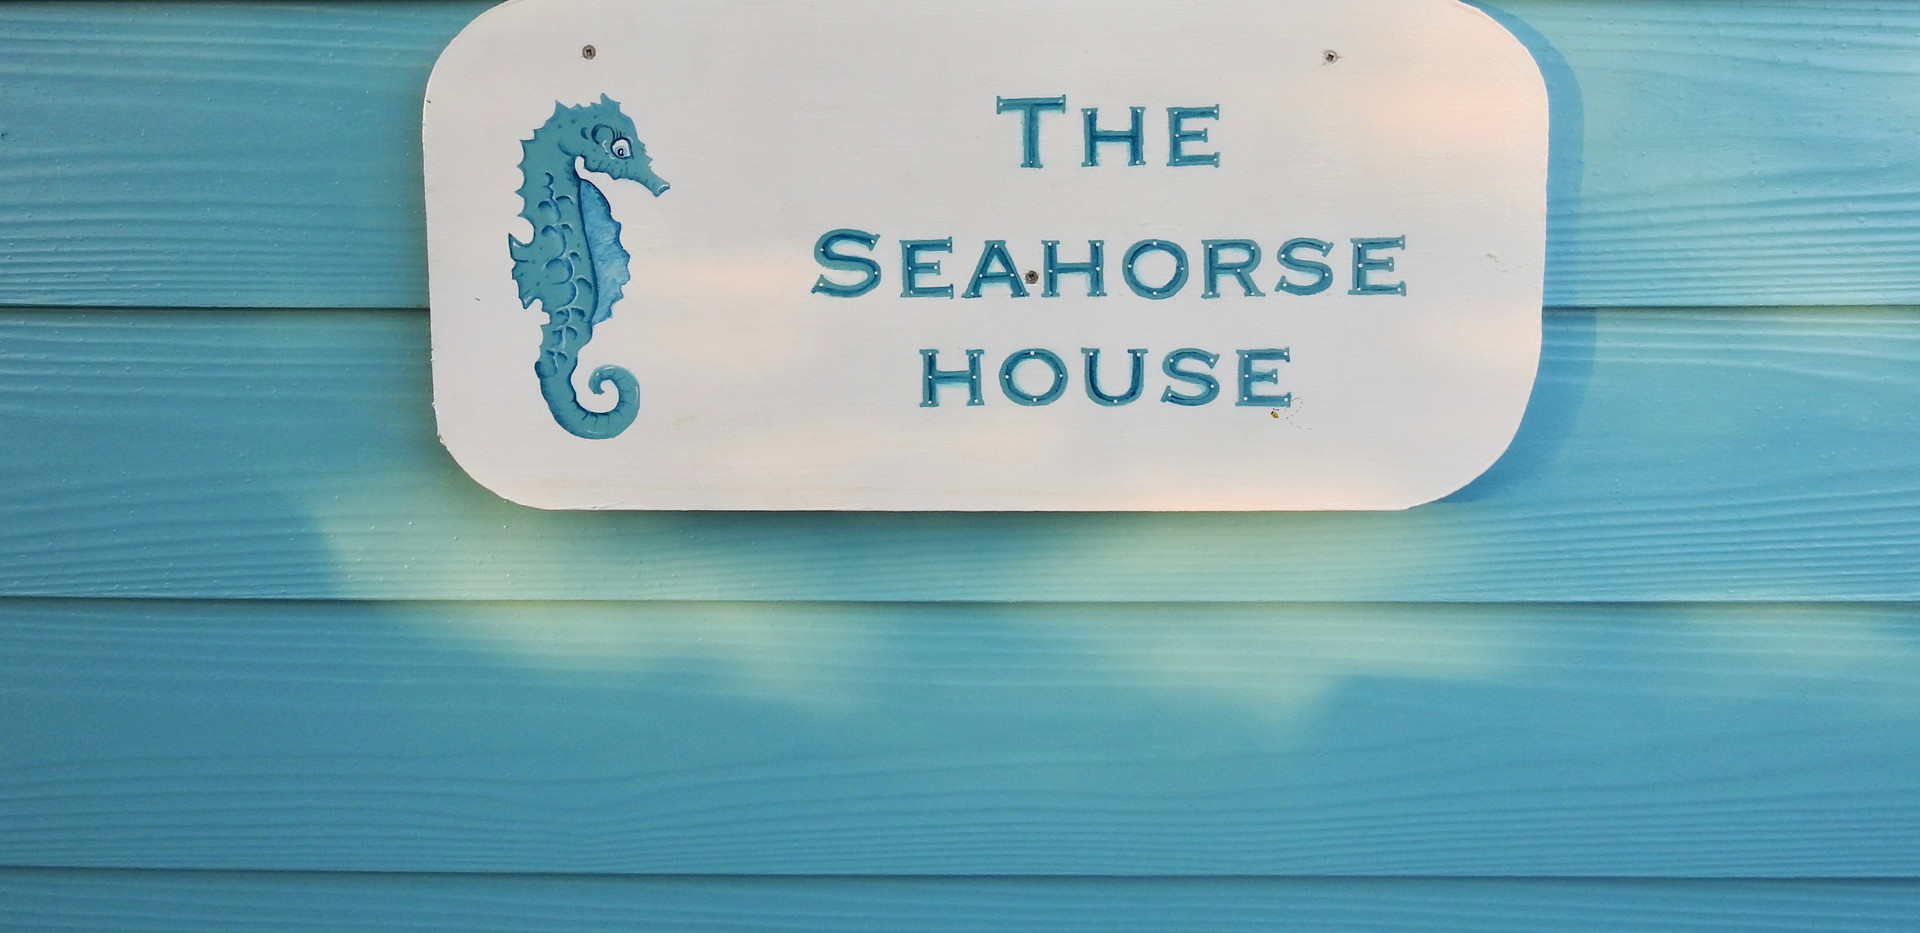 The Seahorse House